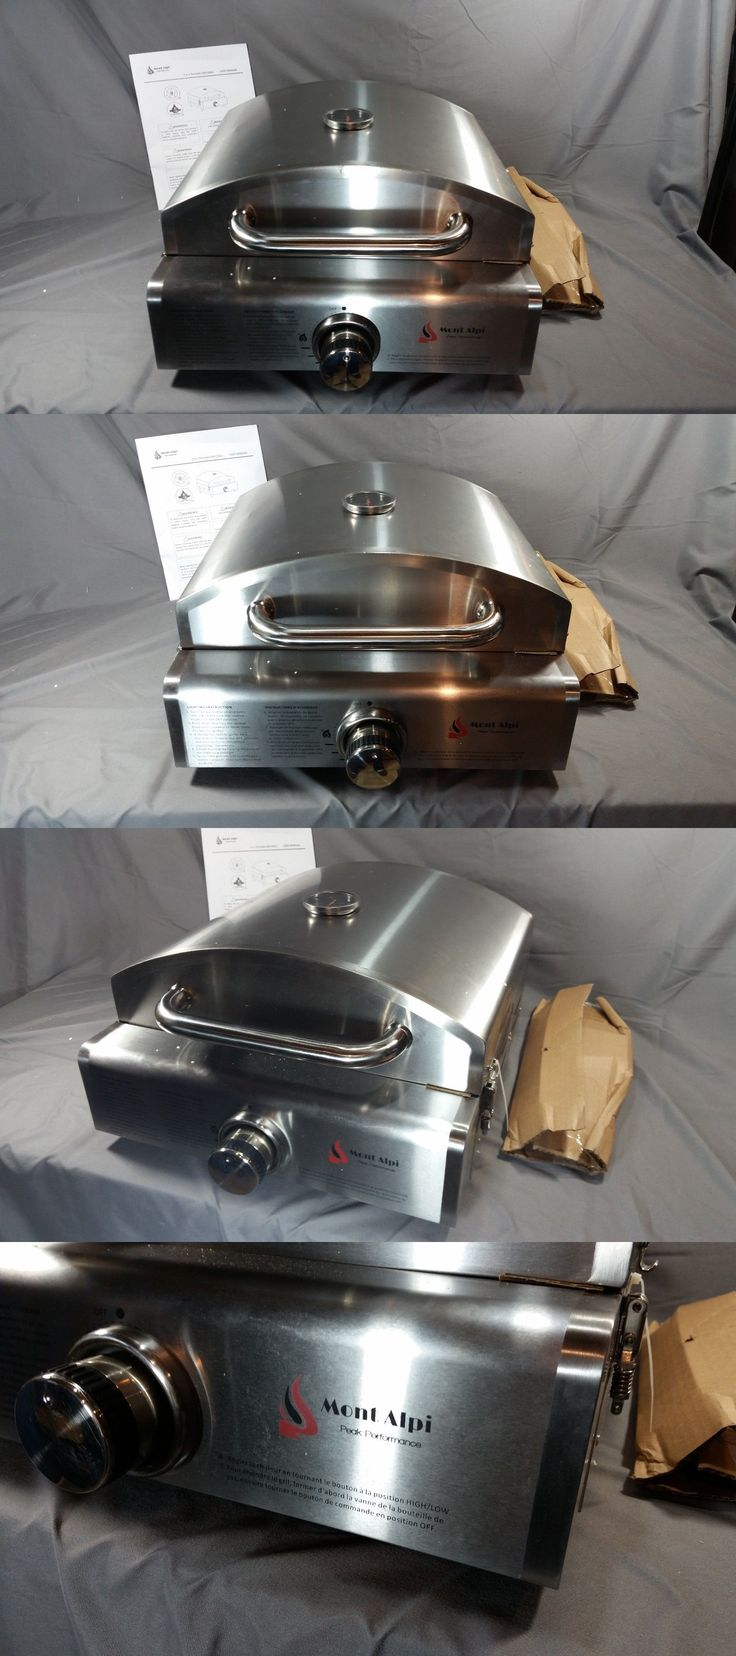 Camping Ovens 181387: Mont Alpi Portable Propane Pizza Oven Grill Magr - New, No Box W Cosmetic Marks -> BUY IT NOW ONLY: $126 on eBay!